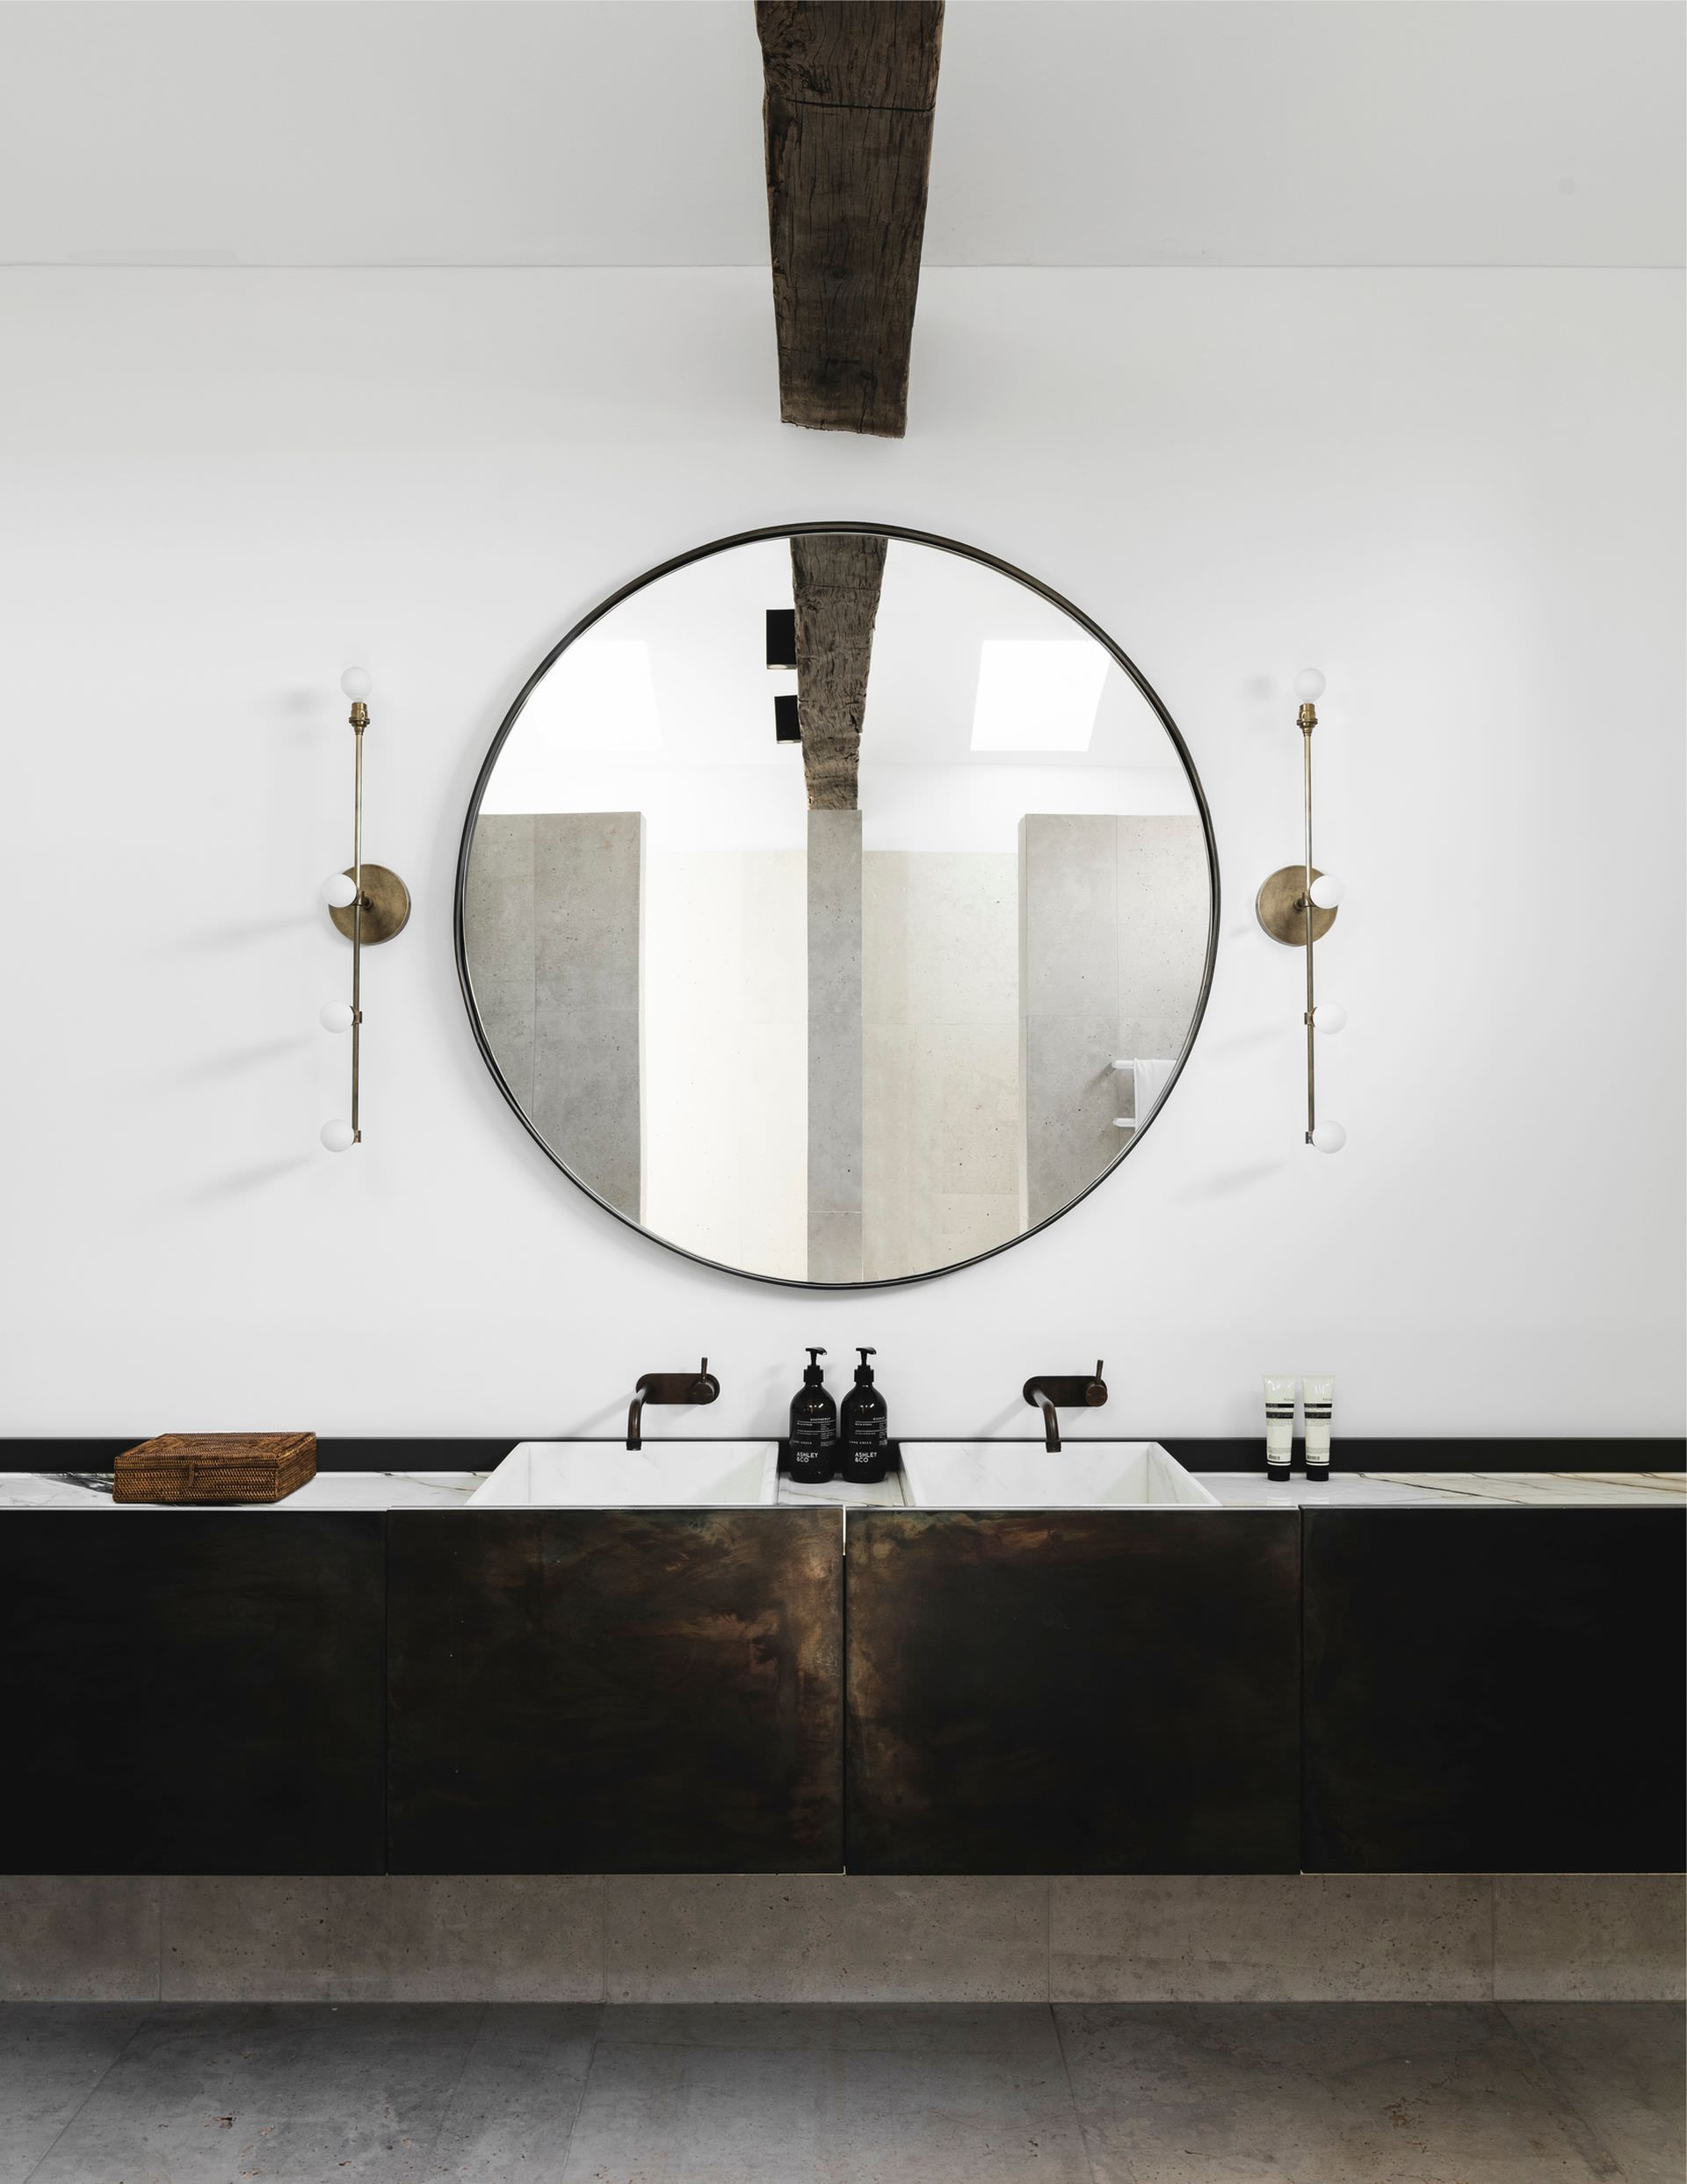 bathrooms industrial best white gallery decoration creative bathroom modern vanity australia timber accent